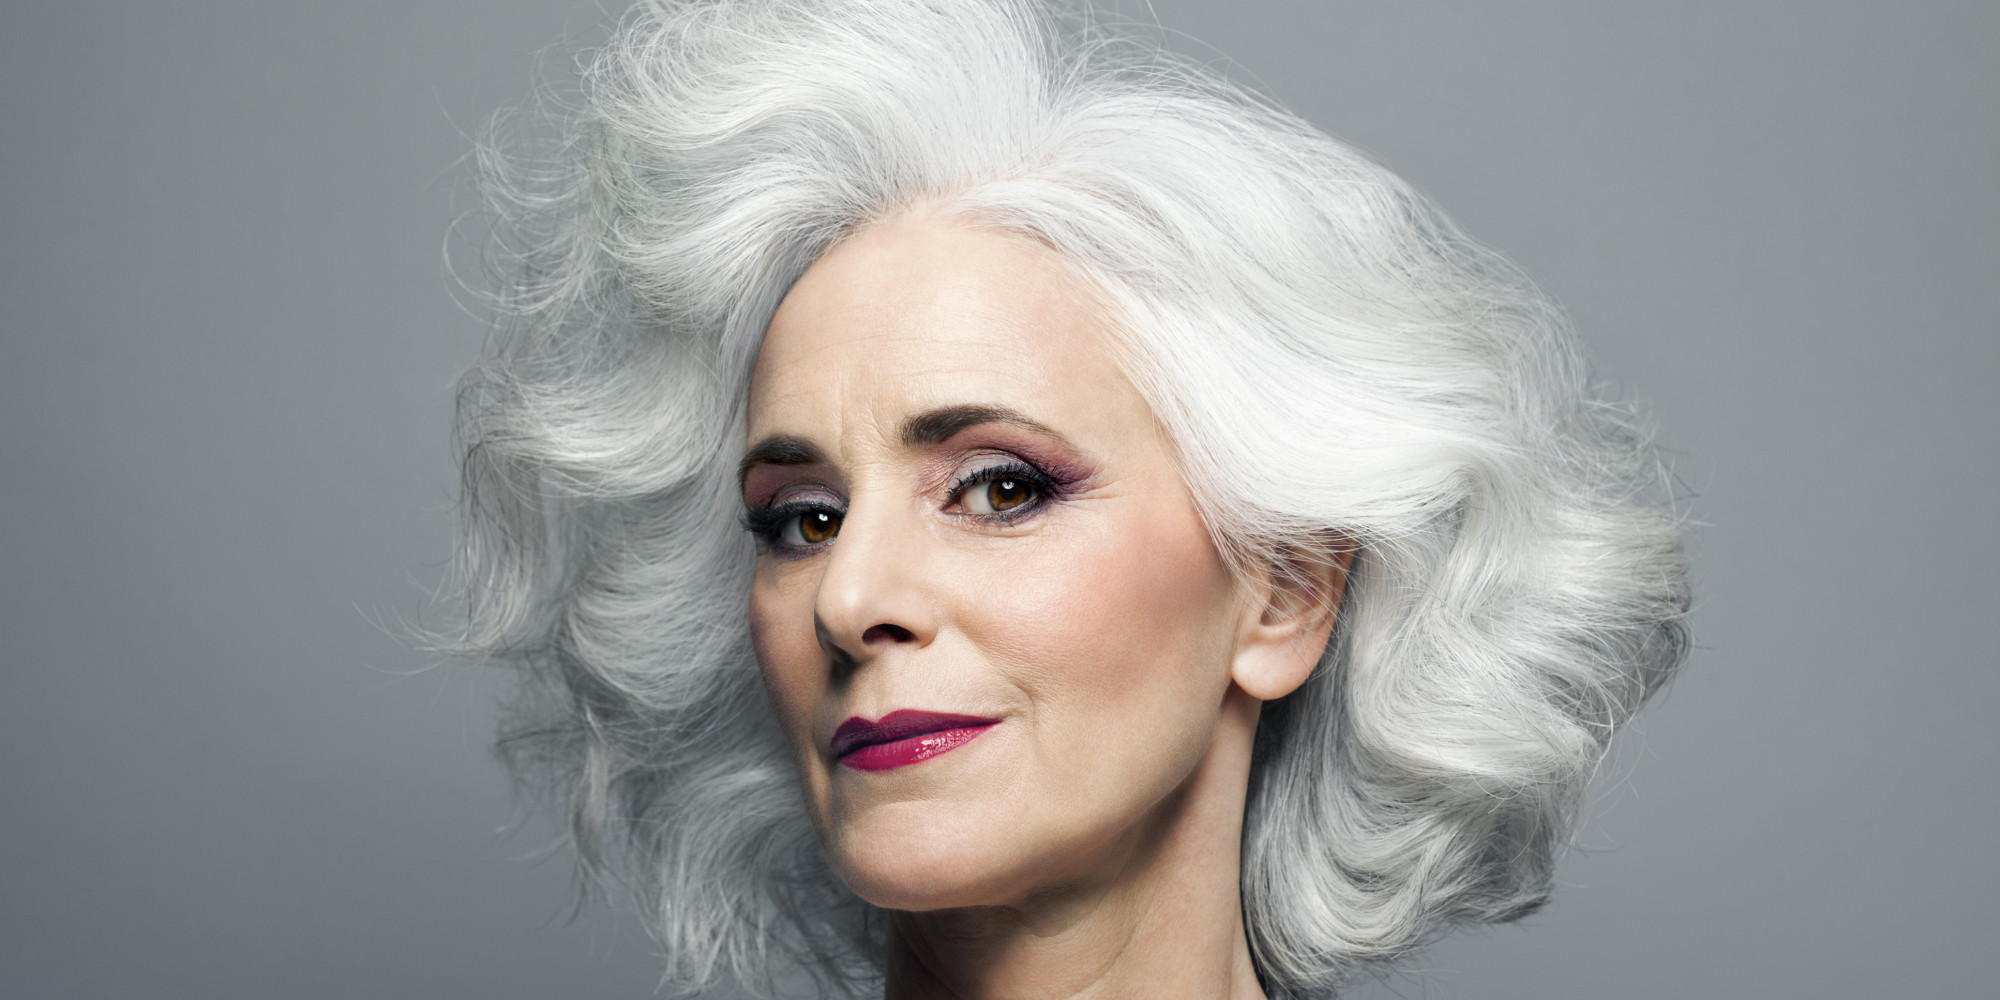 10 Makeup Mistakes That Are Aging You | HuffPost